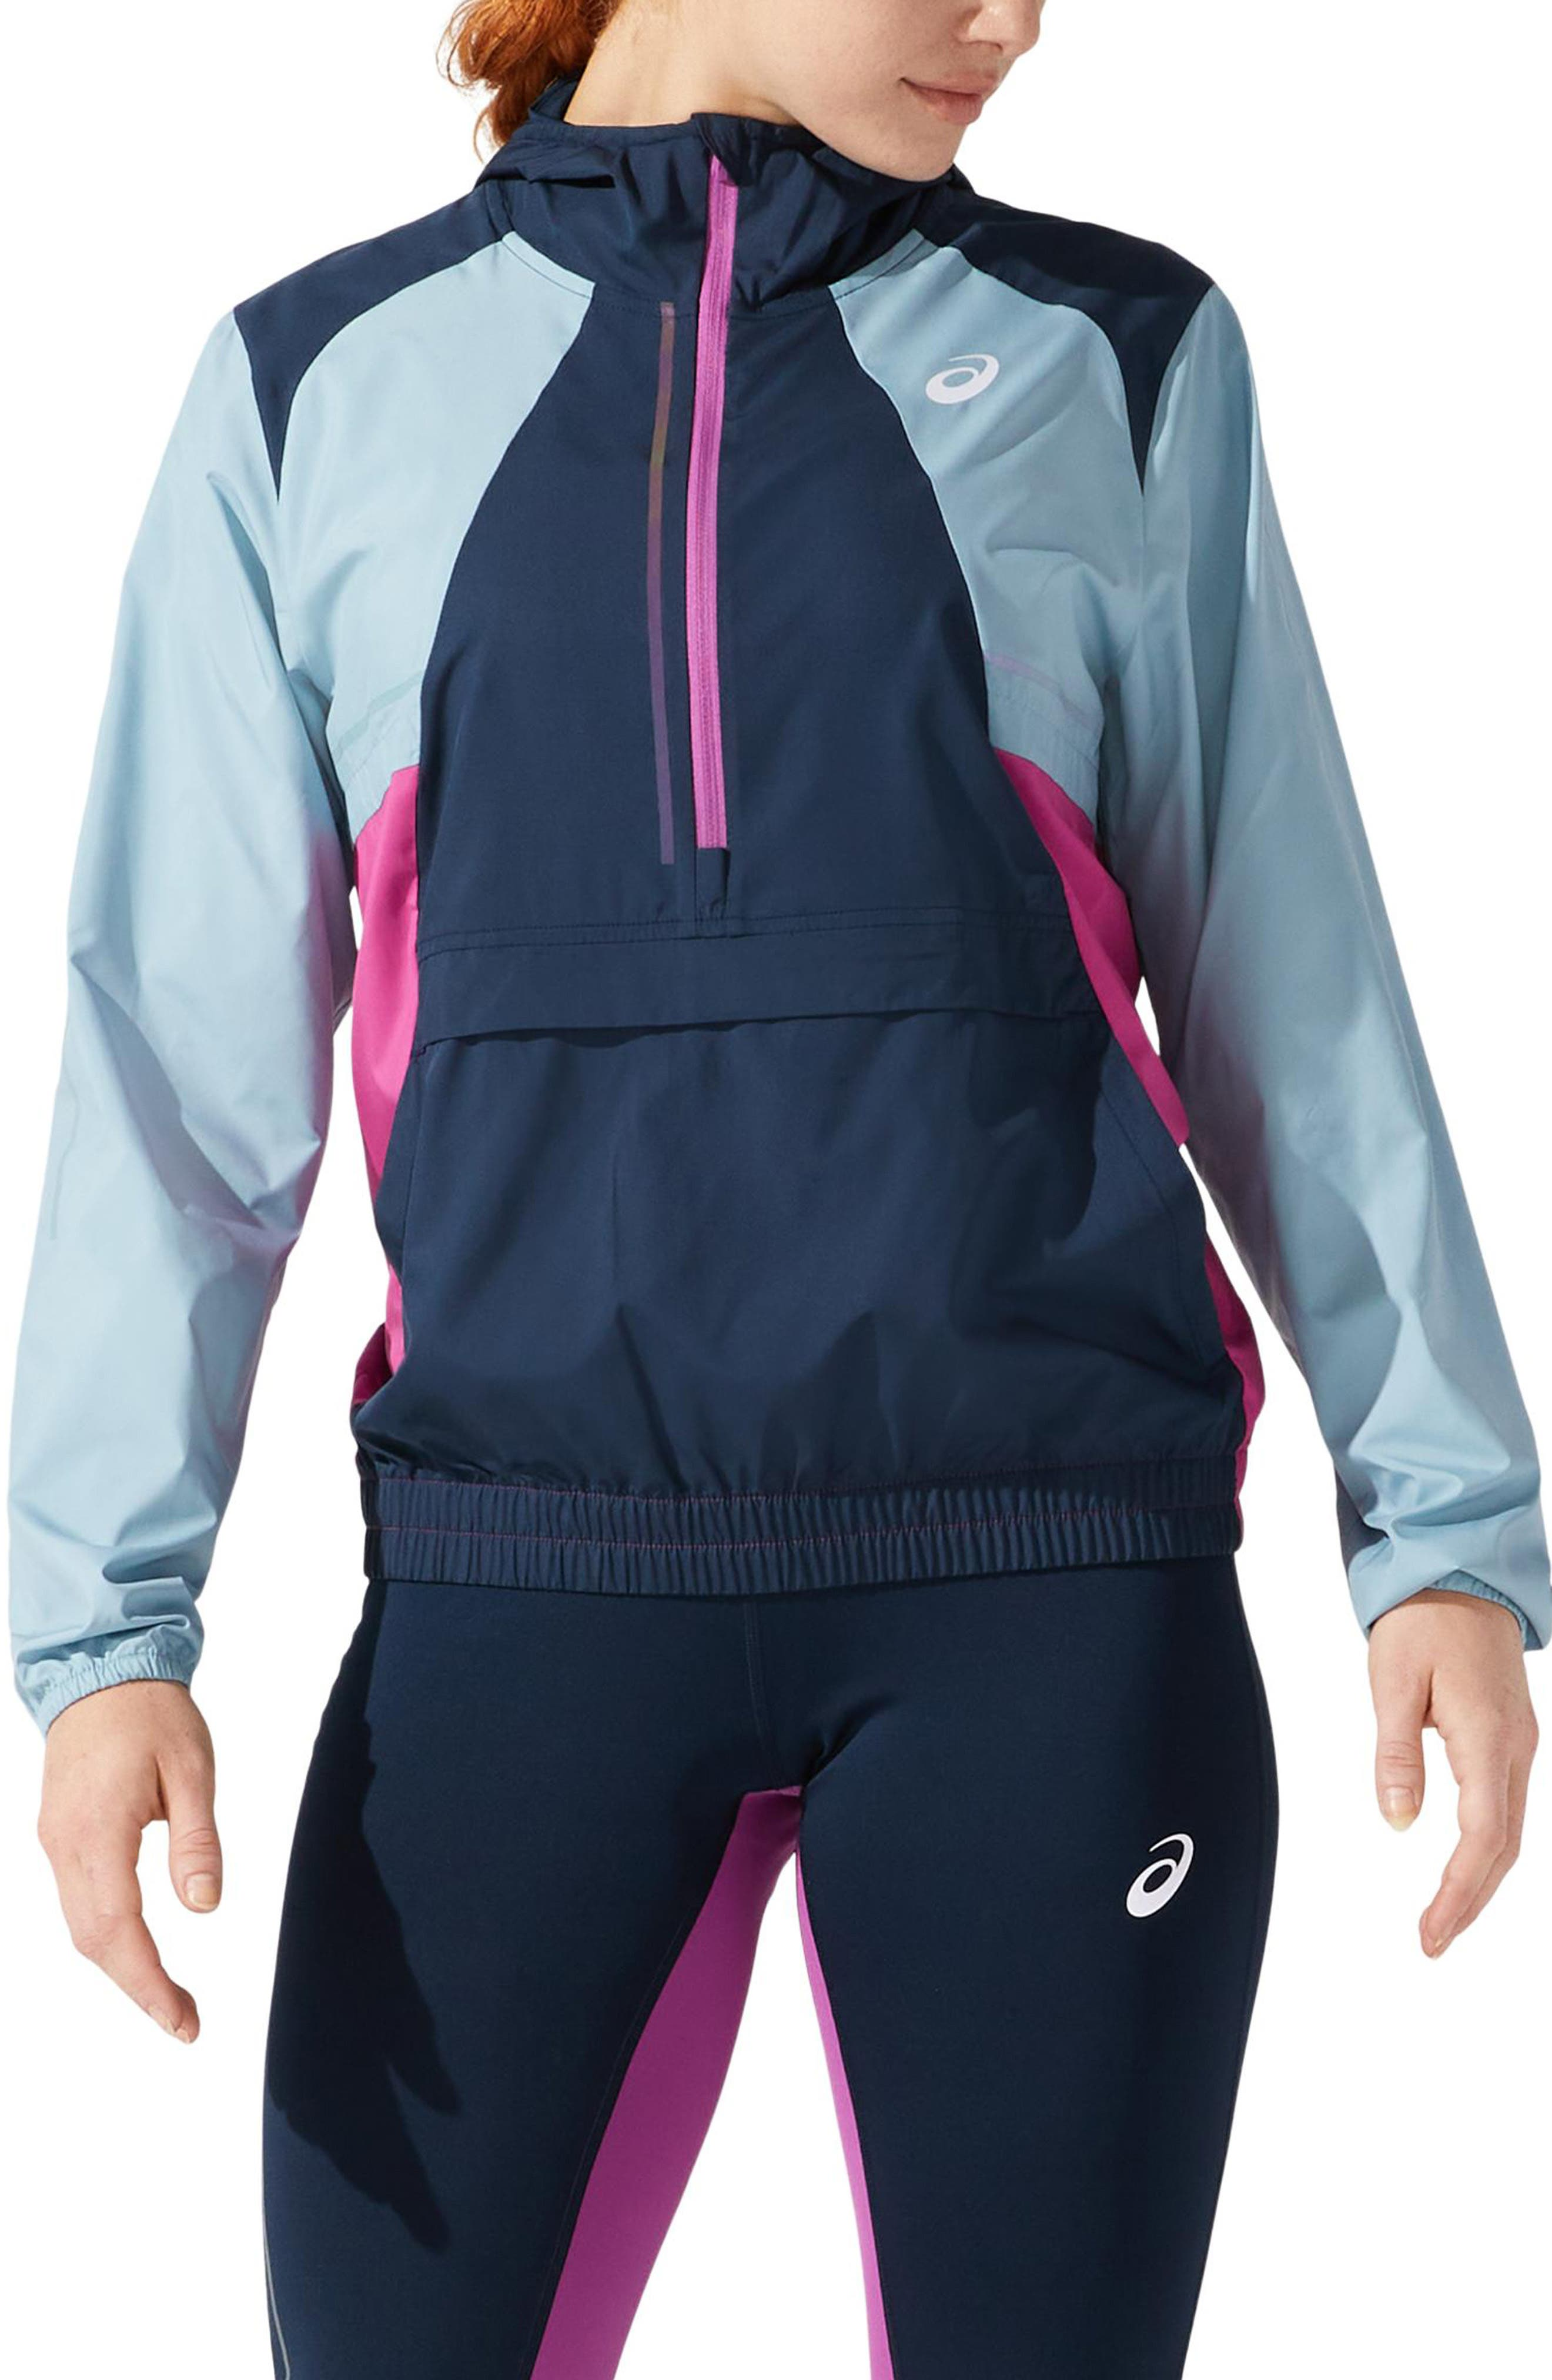 Women's Asics Visibility Water Resistant Hooded Jacket